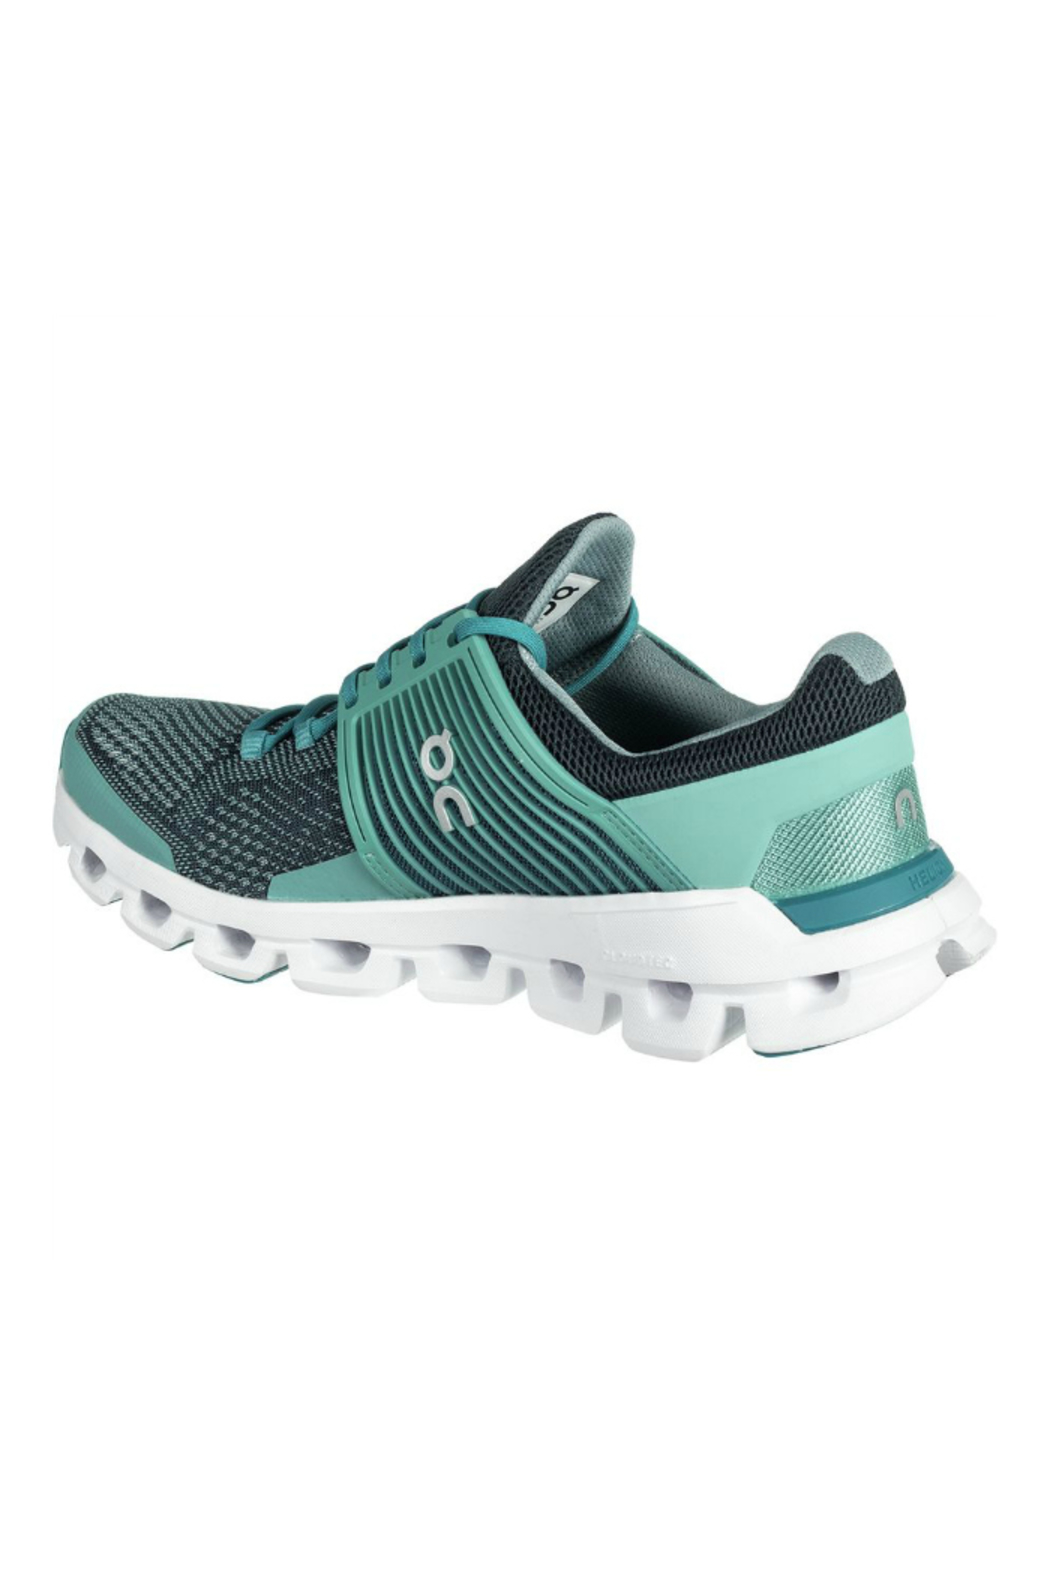 on running ON RUNNING CLOUDSWIFT WOMENS - Front Full Image